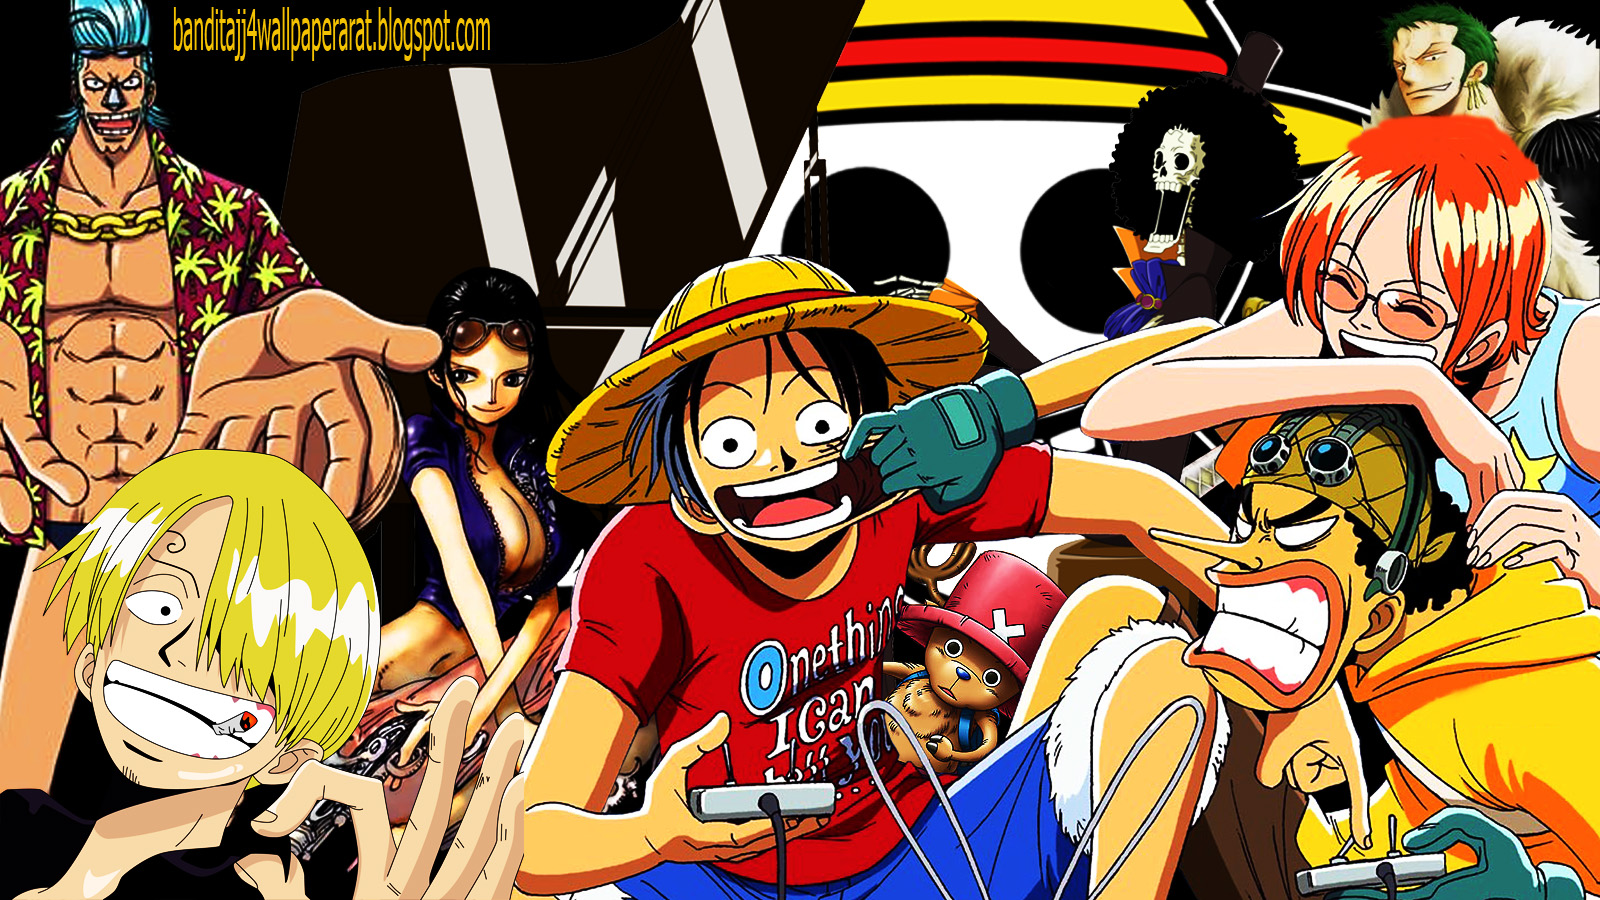 Free Download Hd Widescreen One Piece Wallpaper Hd Wallpaper Widescreen One Piece 1600x900 For Your Desktop Mobile Tablet Explore 73 One Piece New World Wallpaper One Piece Wallpaper 2015